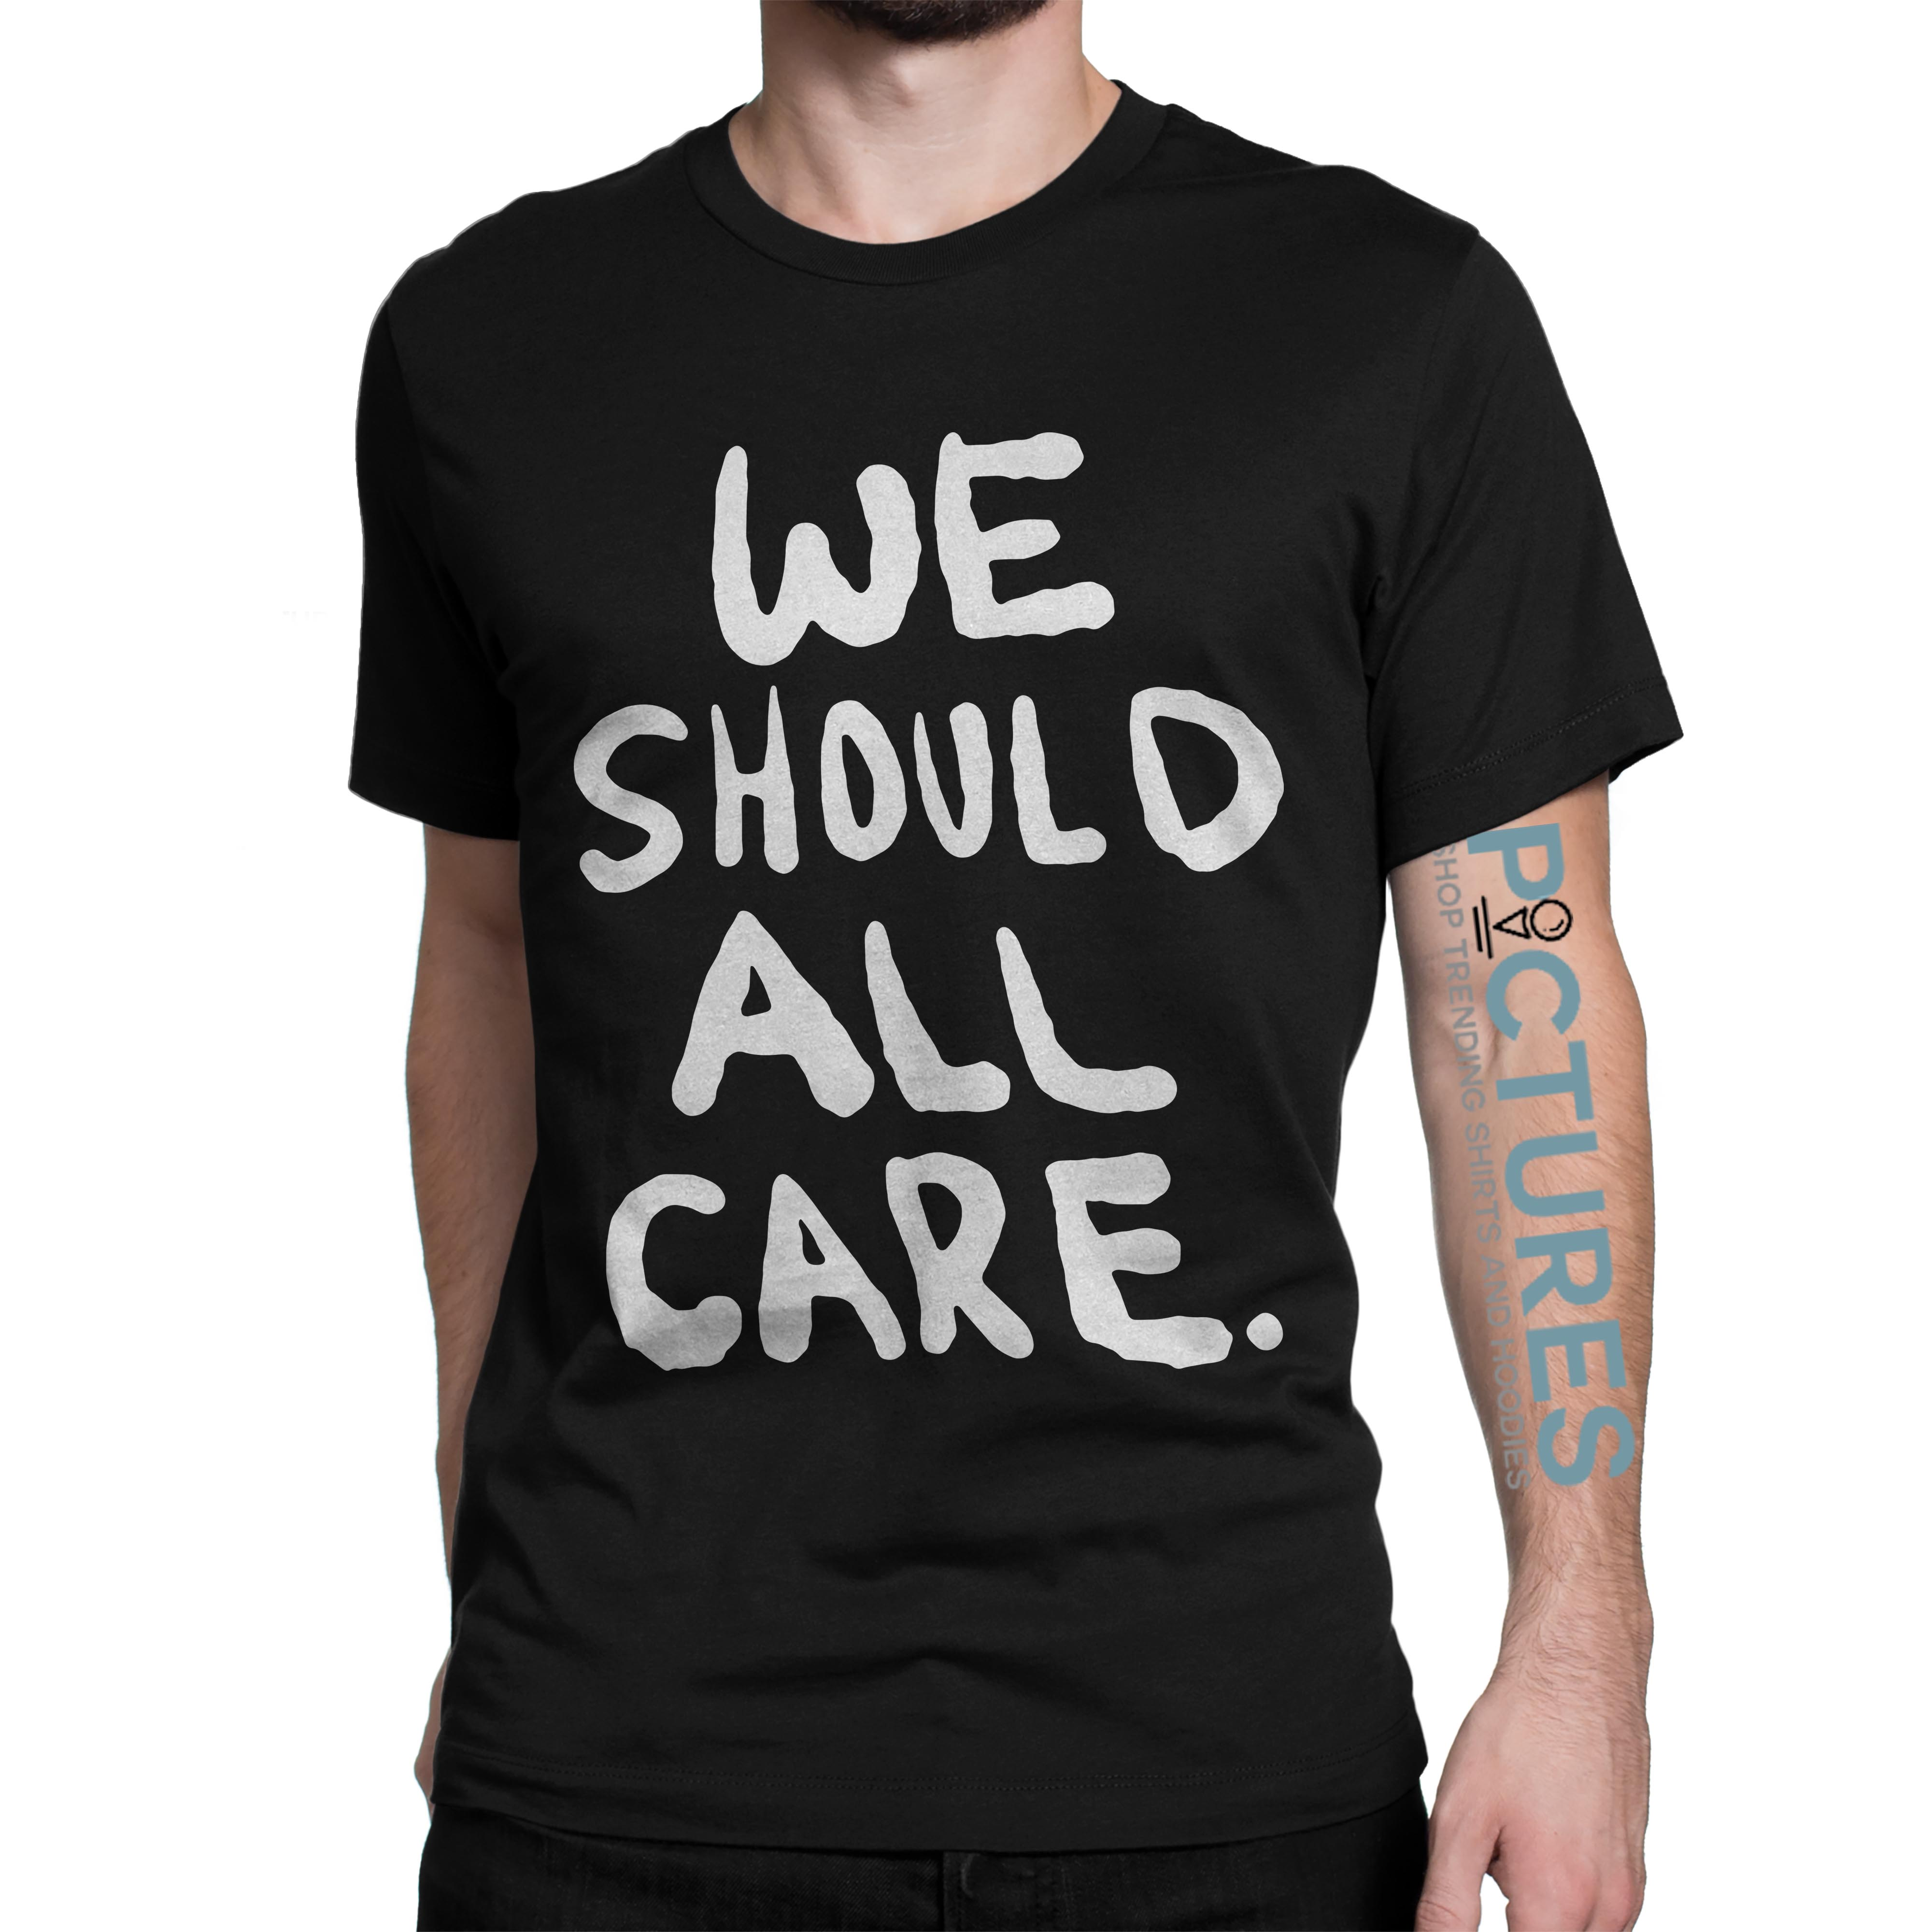 We should all care shirt